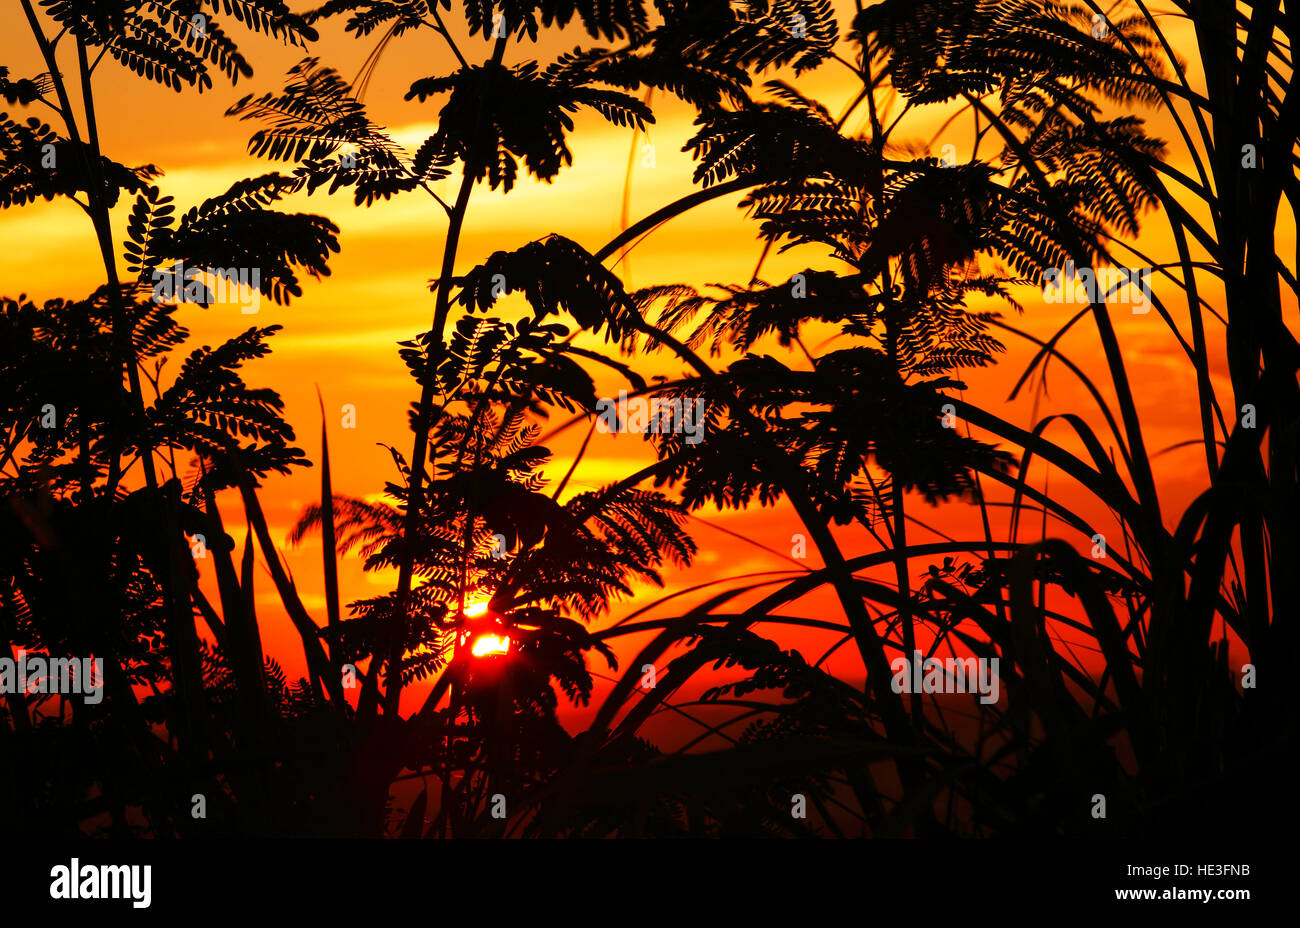 Sunset silhouette at Puchong, Malaysia. - Stock Image